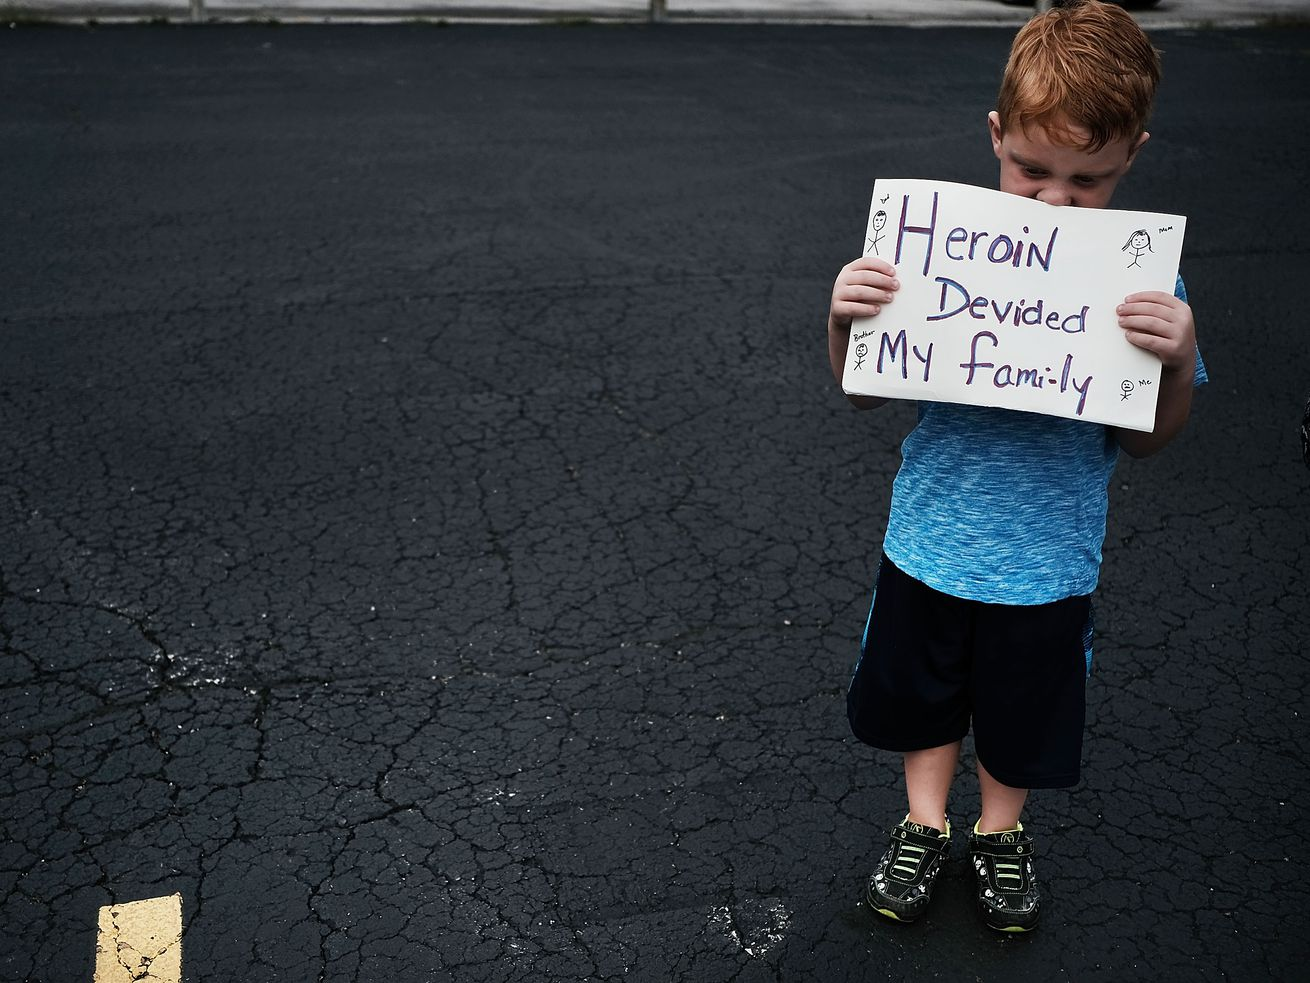 """Derrick Slaughter, 5, attends a march against the opioid epidemic. He holds a sign that reads, """"Heroin divided my family."""""""